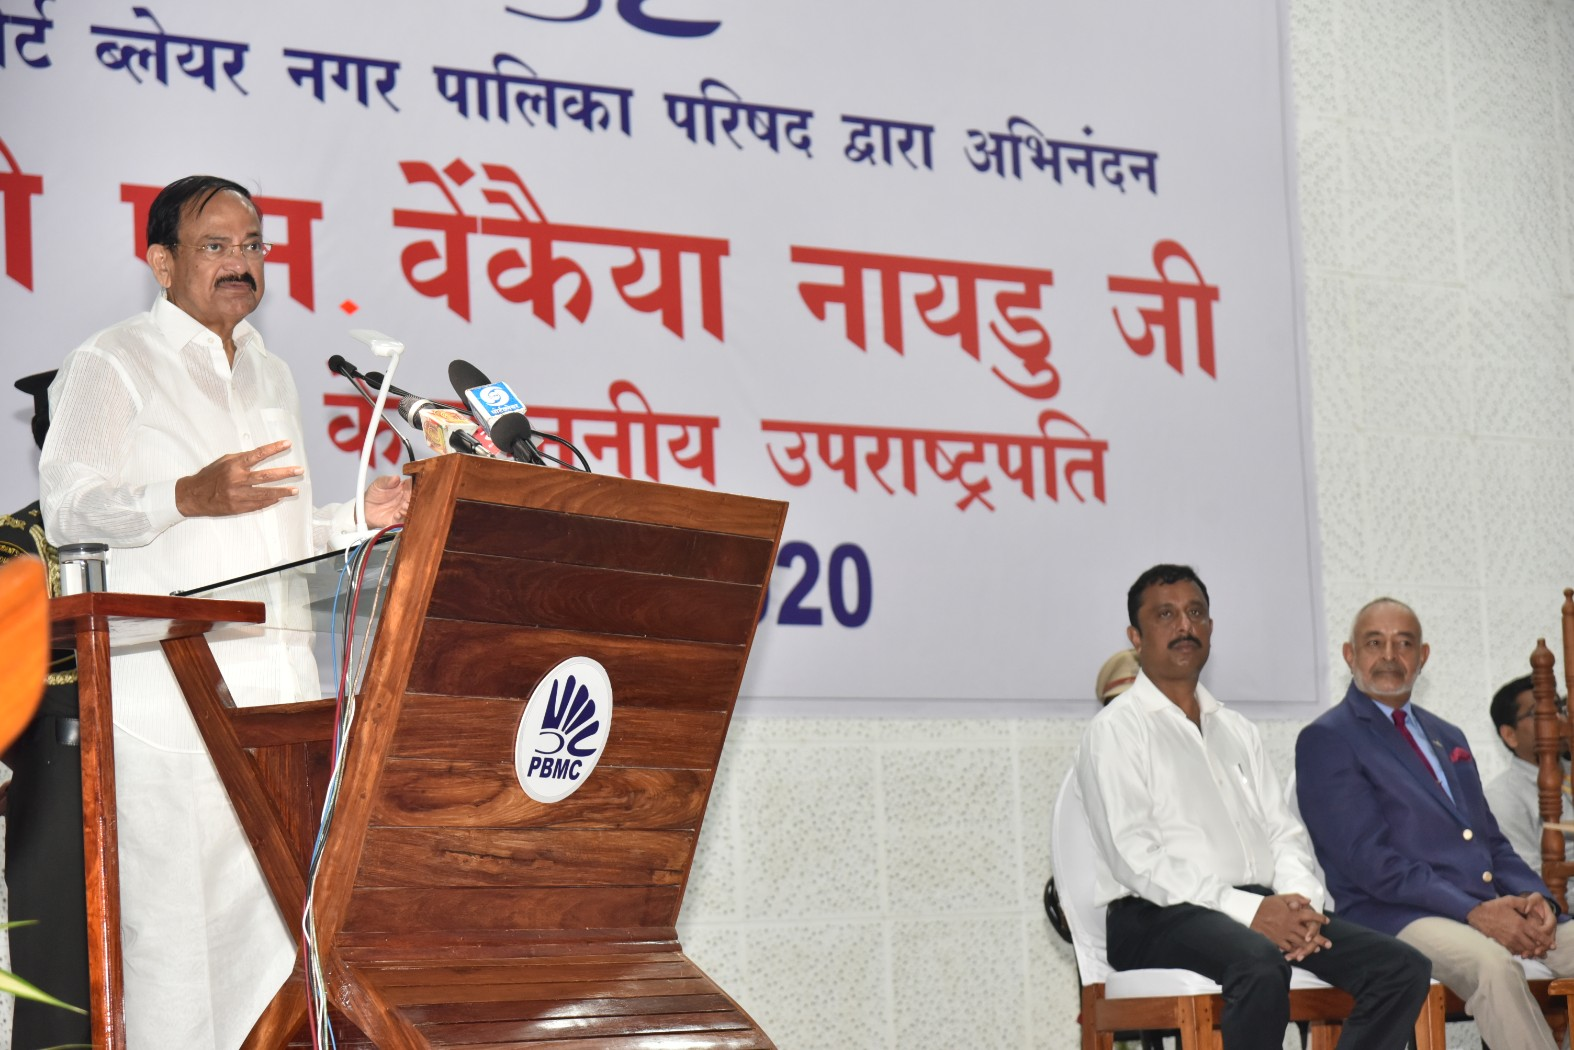 The Vice President, Shri M. Venkaiah Naidu addressing the gathering at the Civic Reception in Port Blair, Andaman and Nicobar on January 17, 2020.